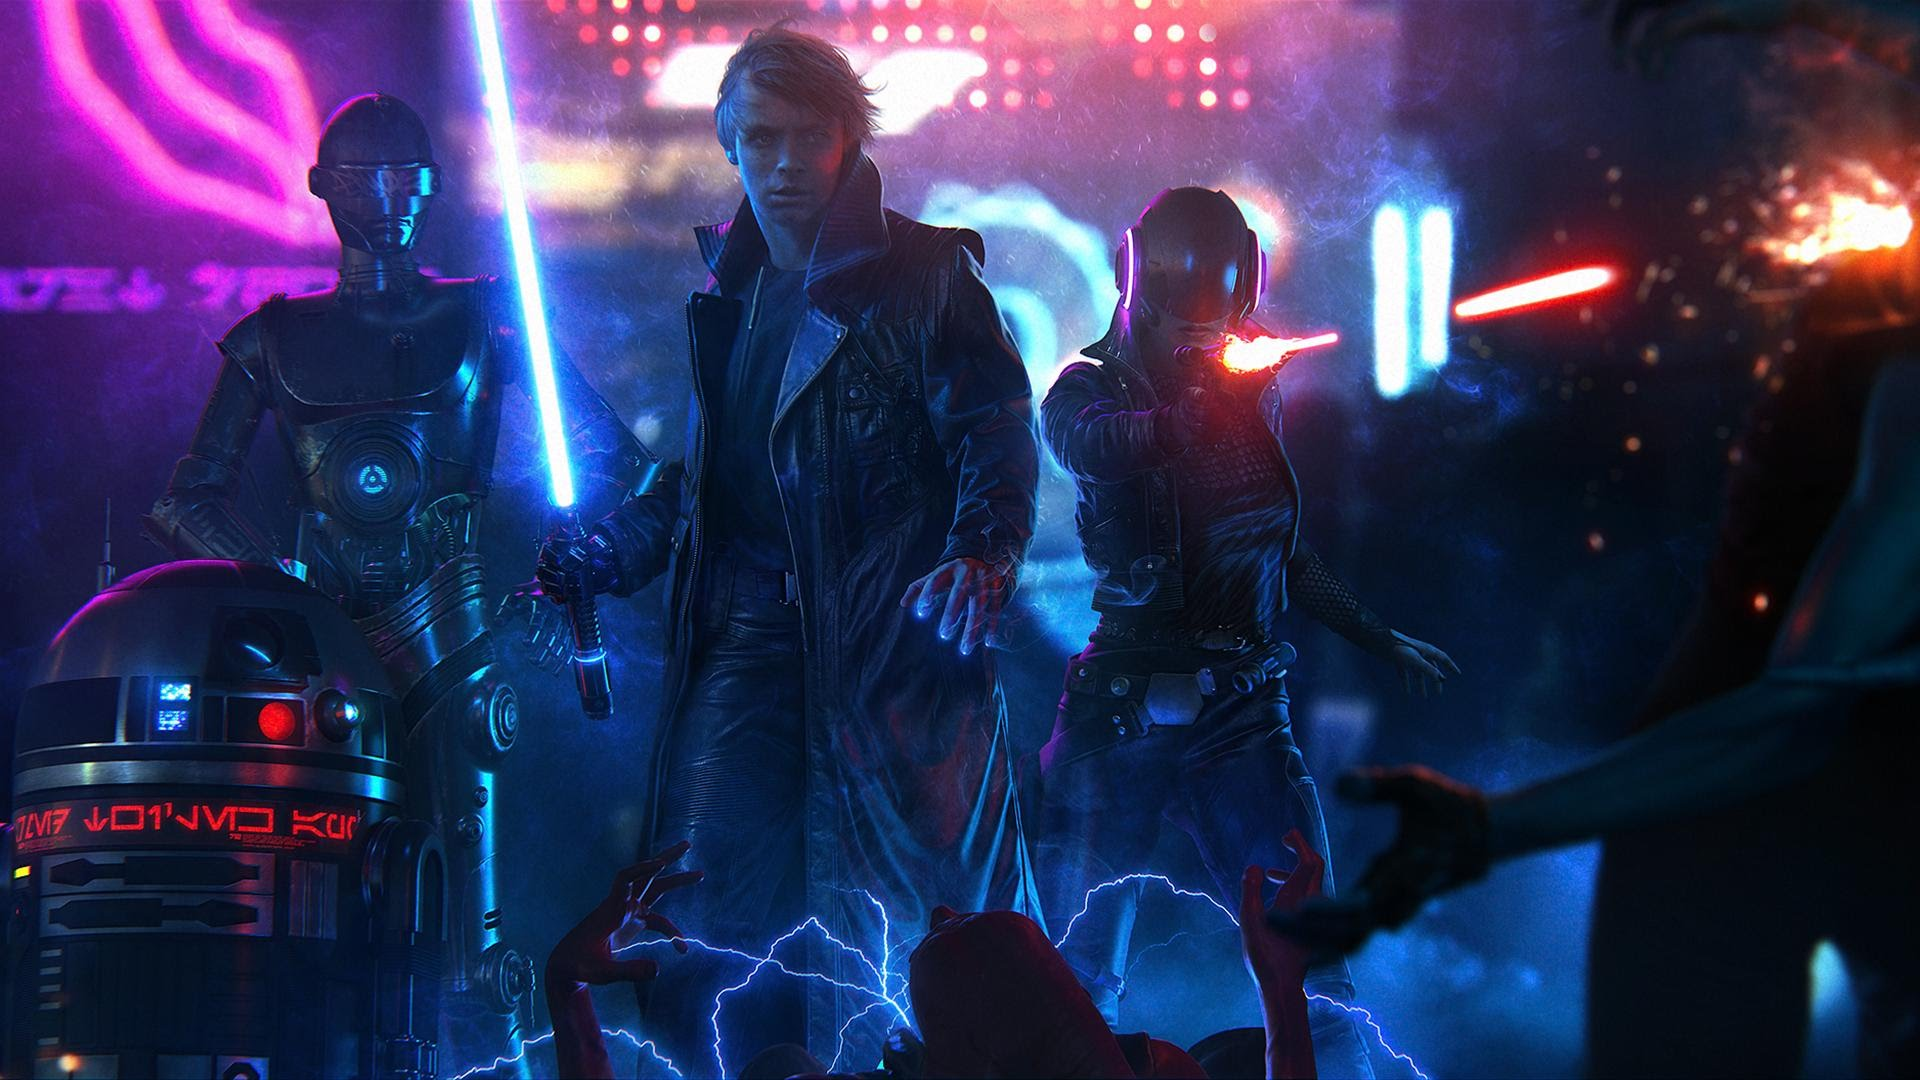 A+Dark+Jedi+and+a+Renegade+Princess+ +Art+by+Jeronimo+Gomez - Cyberpunk Star Wars - A Dark Jedi and a Renegade Princess